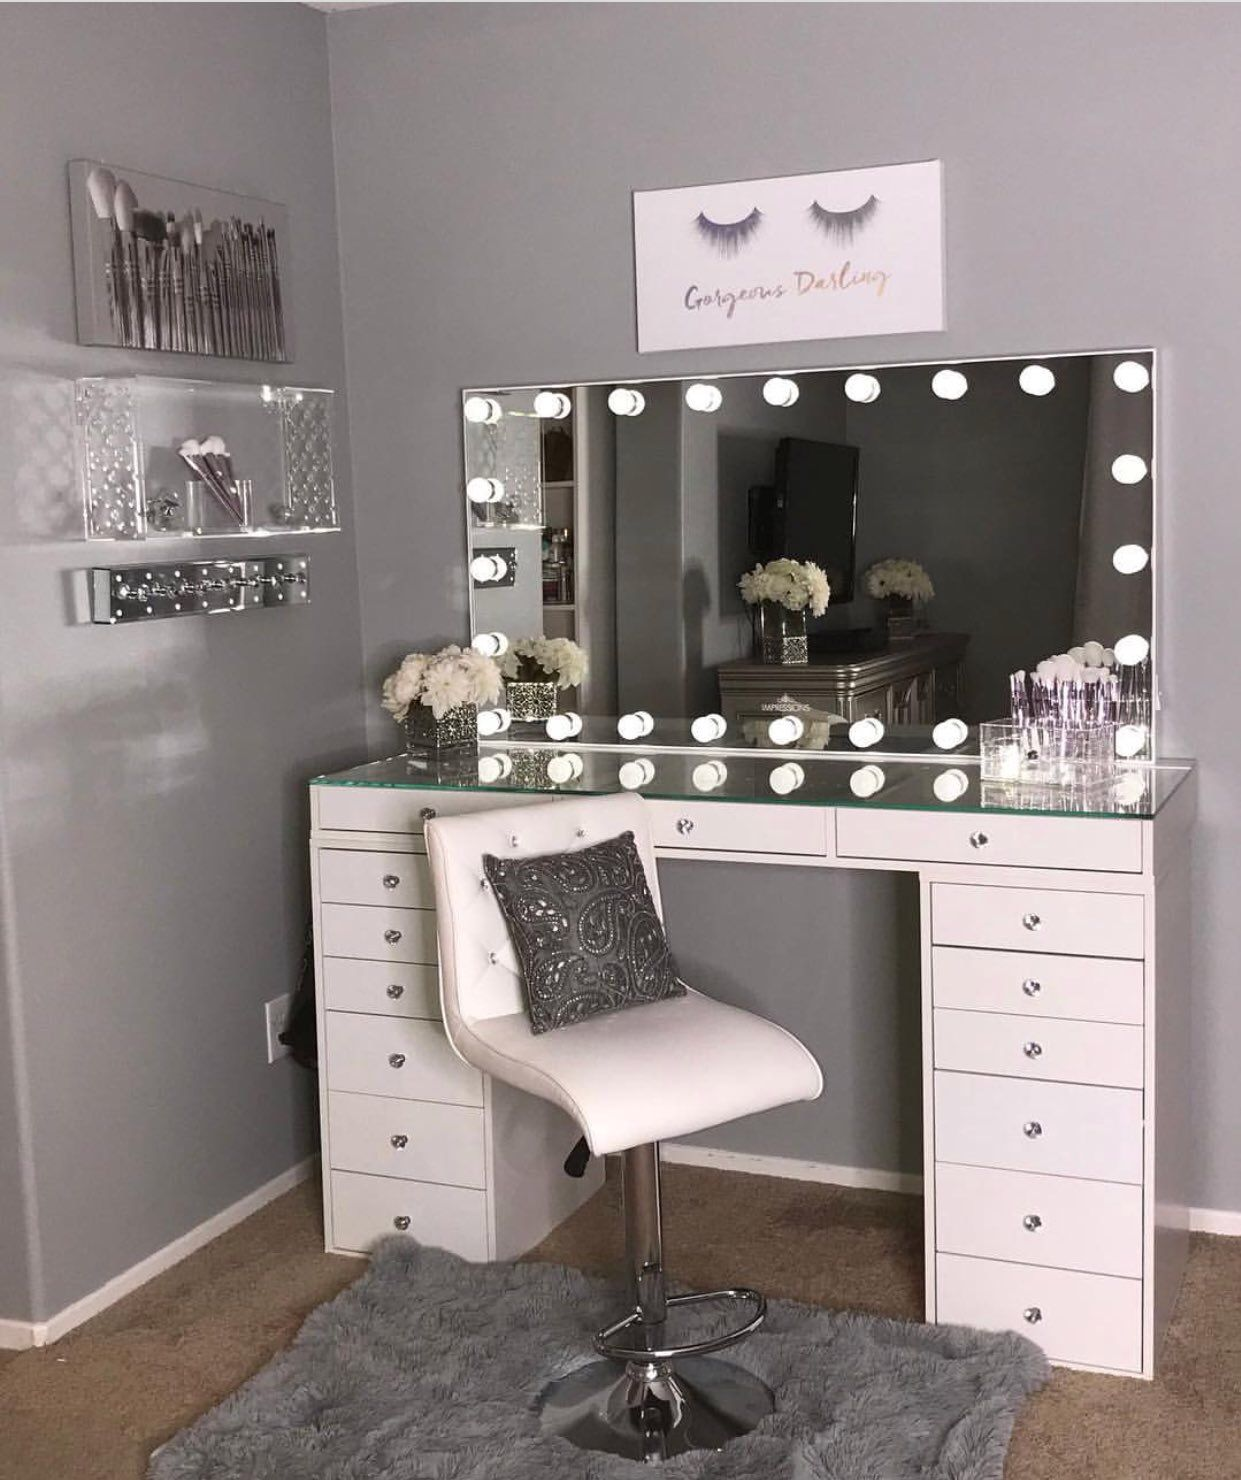 Schlafzimmer Gestalten Pinterest Pinterest Jessicaavelar Furniture Rooms In 2019